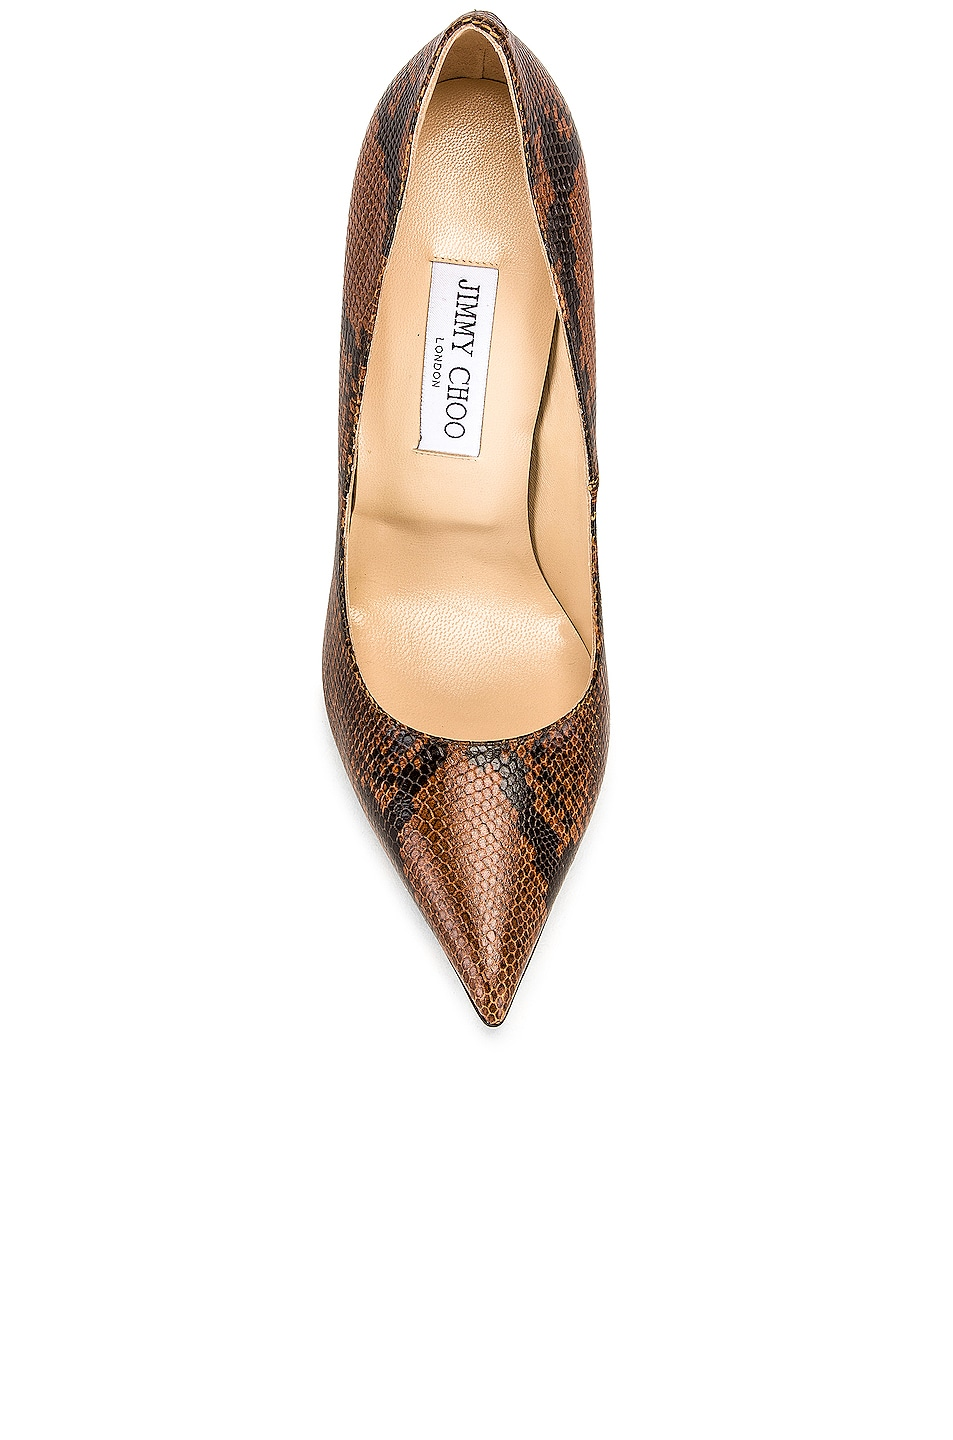 Image 4 of Jimmy Choo Snake Print Anouk 120 Heel in Cuoio